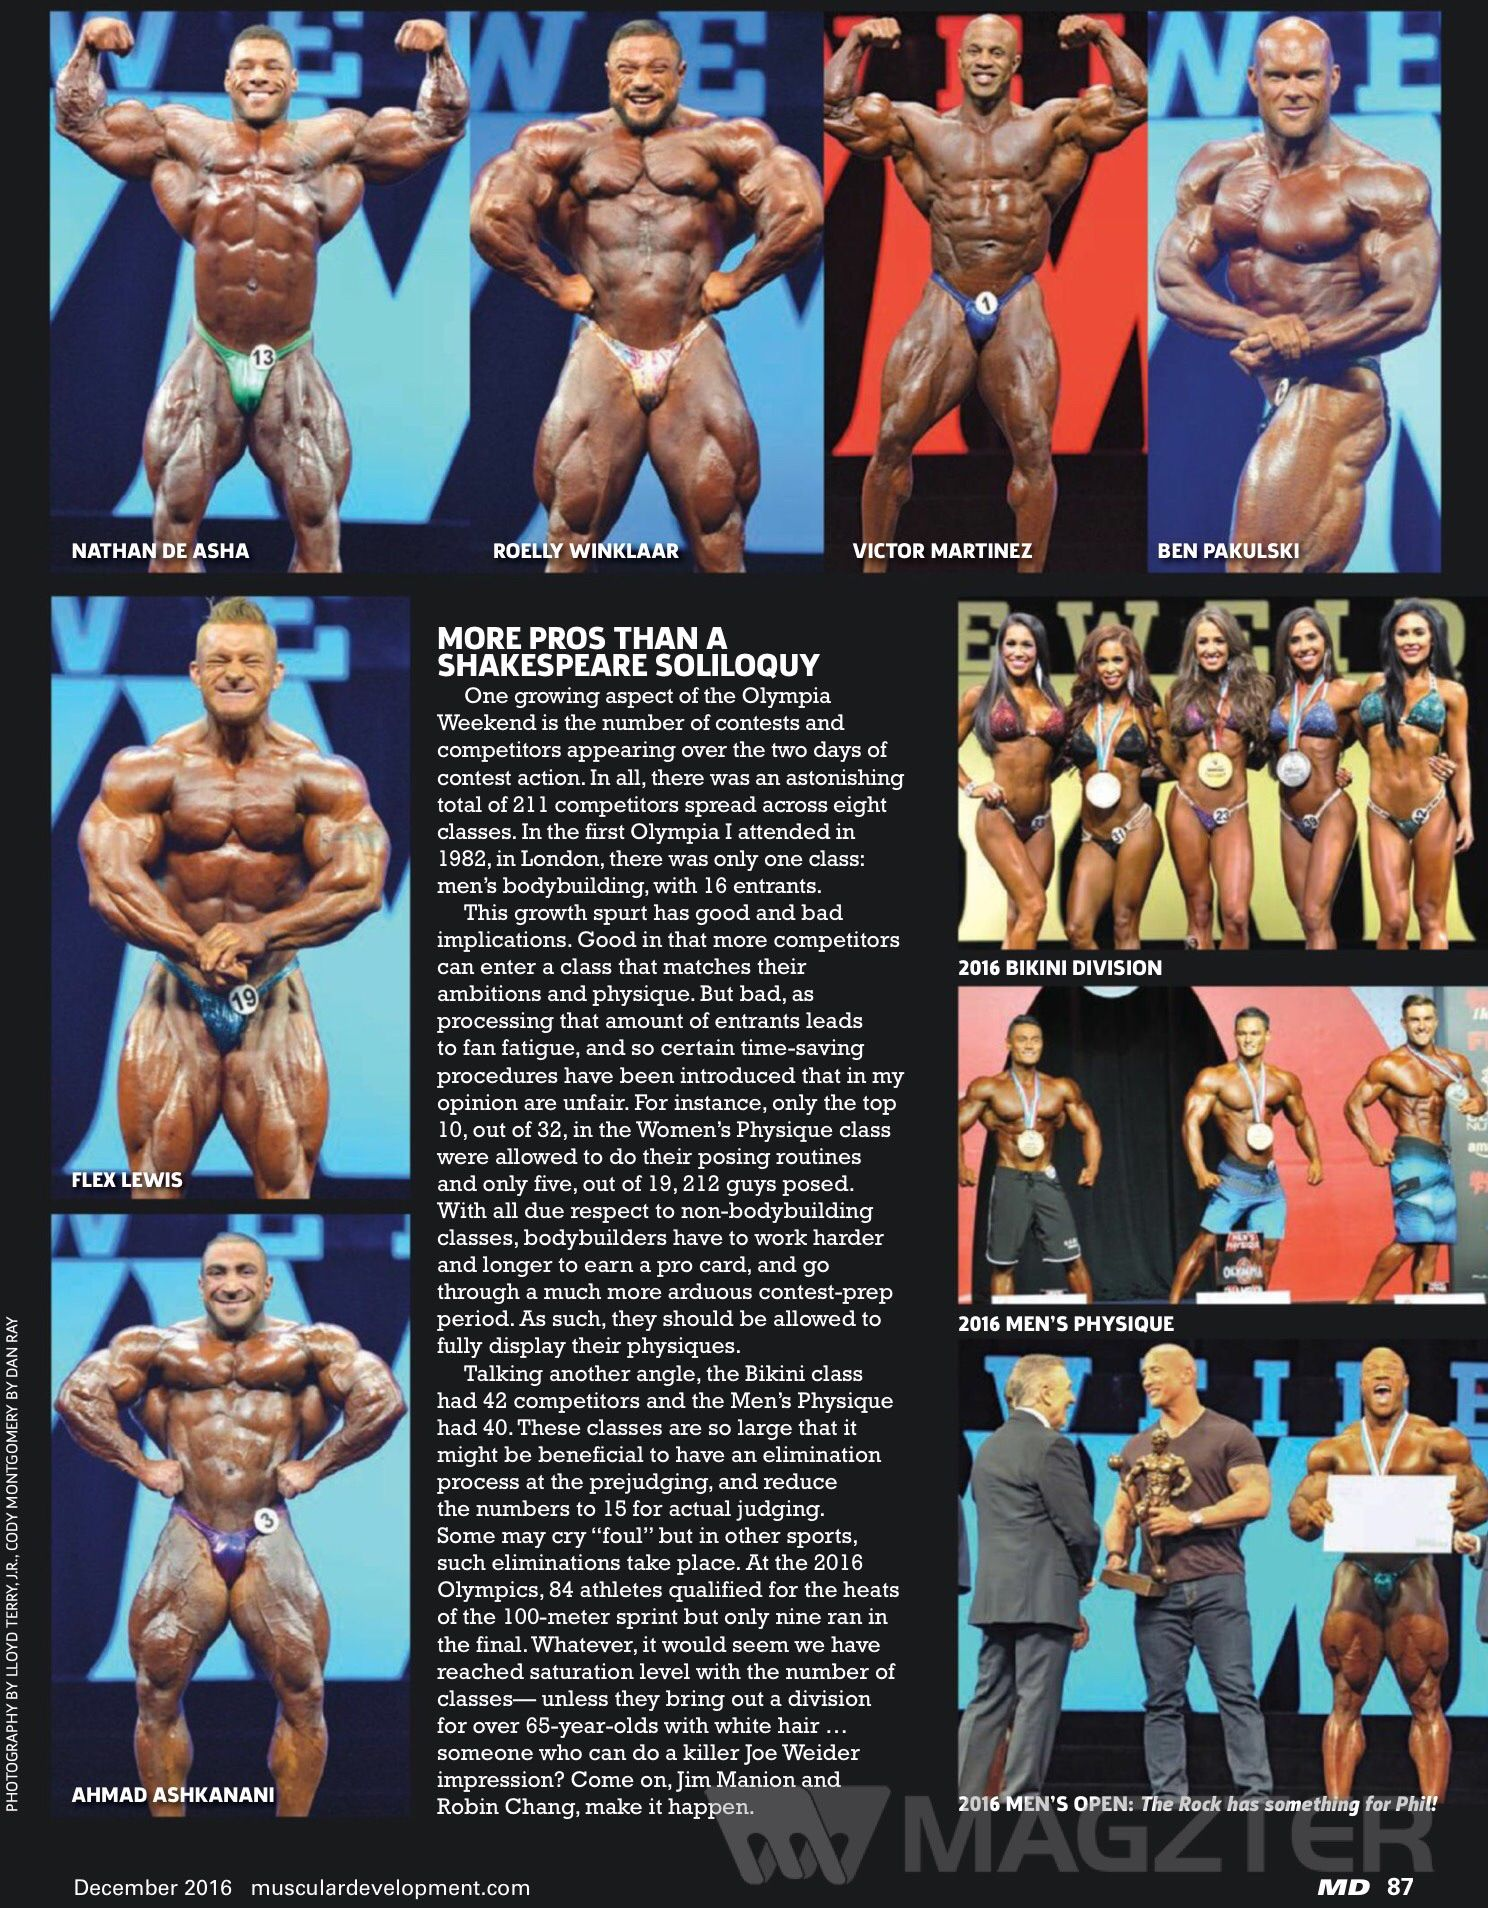 December 2016 edition of Muscular Development #IFBBPRO #BODYBUILDING #OLYMPIA #STAGEPHOTOGRAPHY